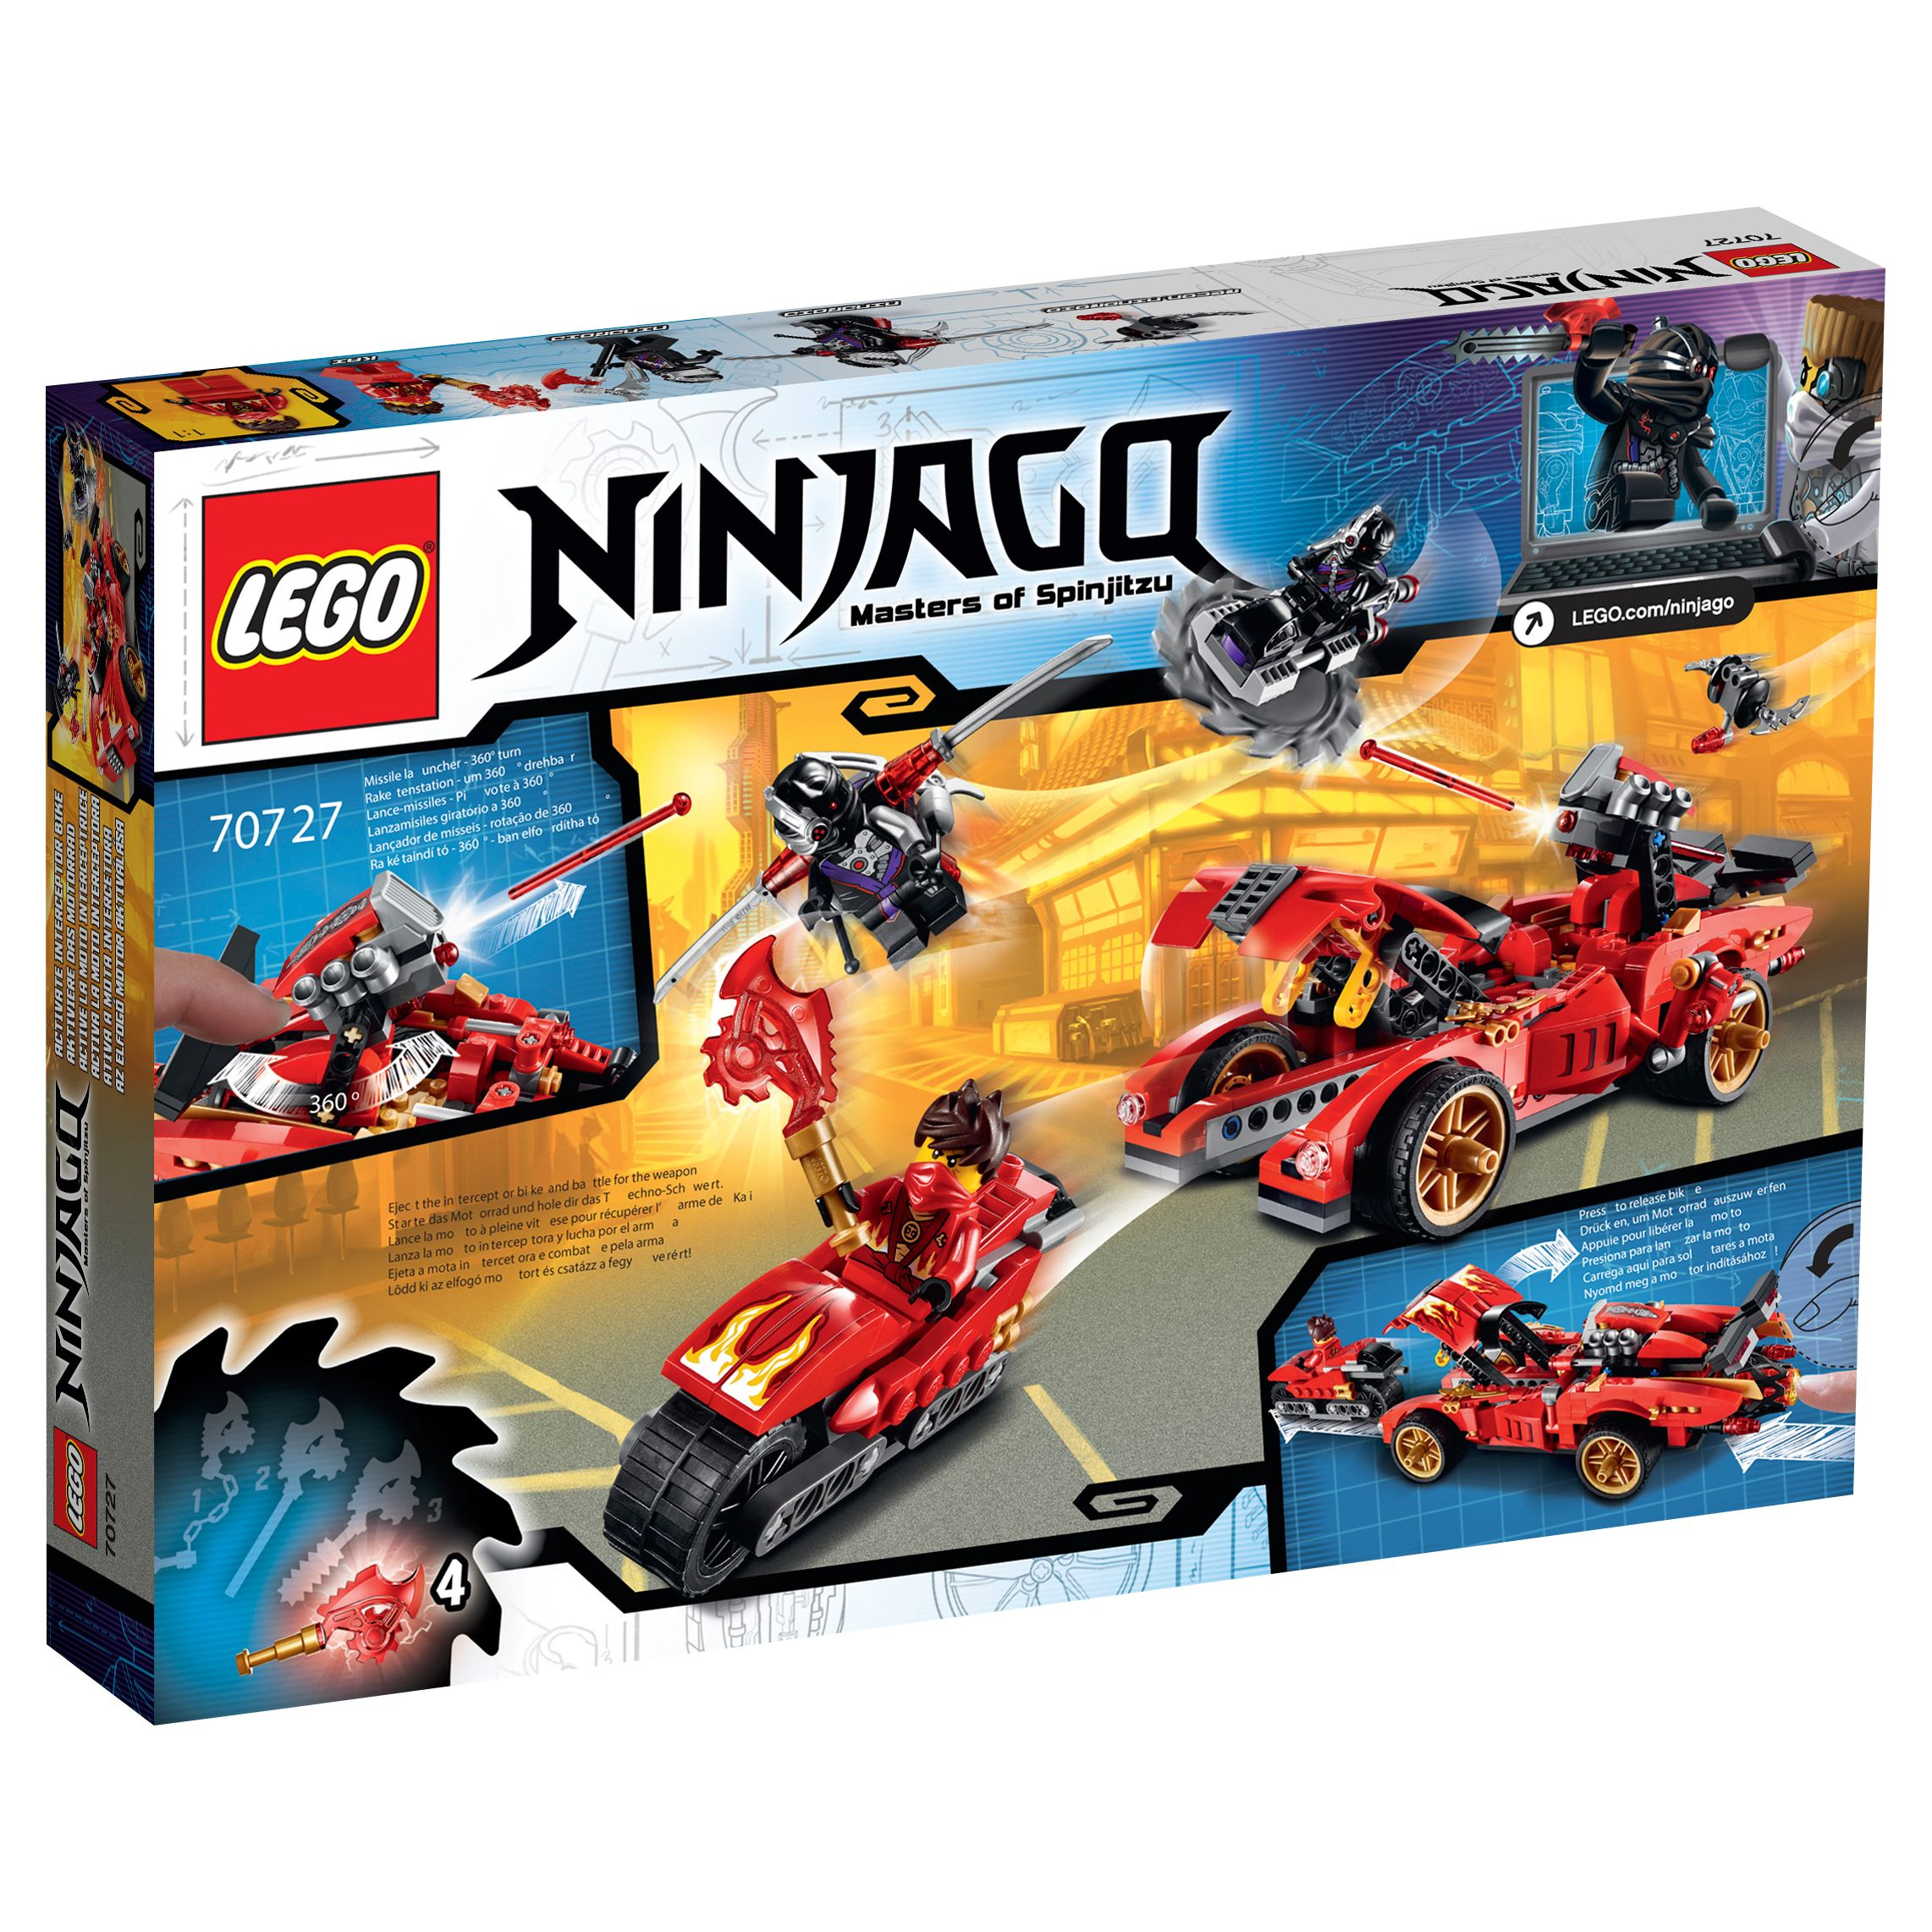 Buy cheap Lego ninjago - compare Toys prices for best UK deals